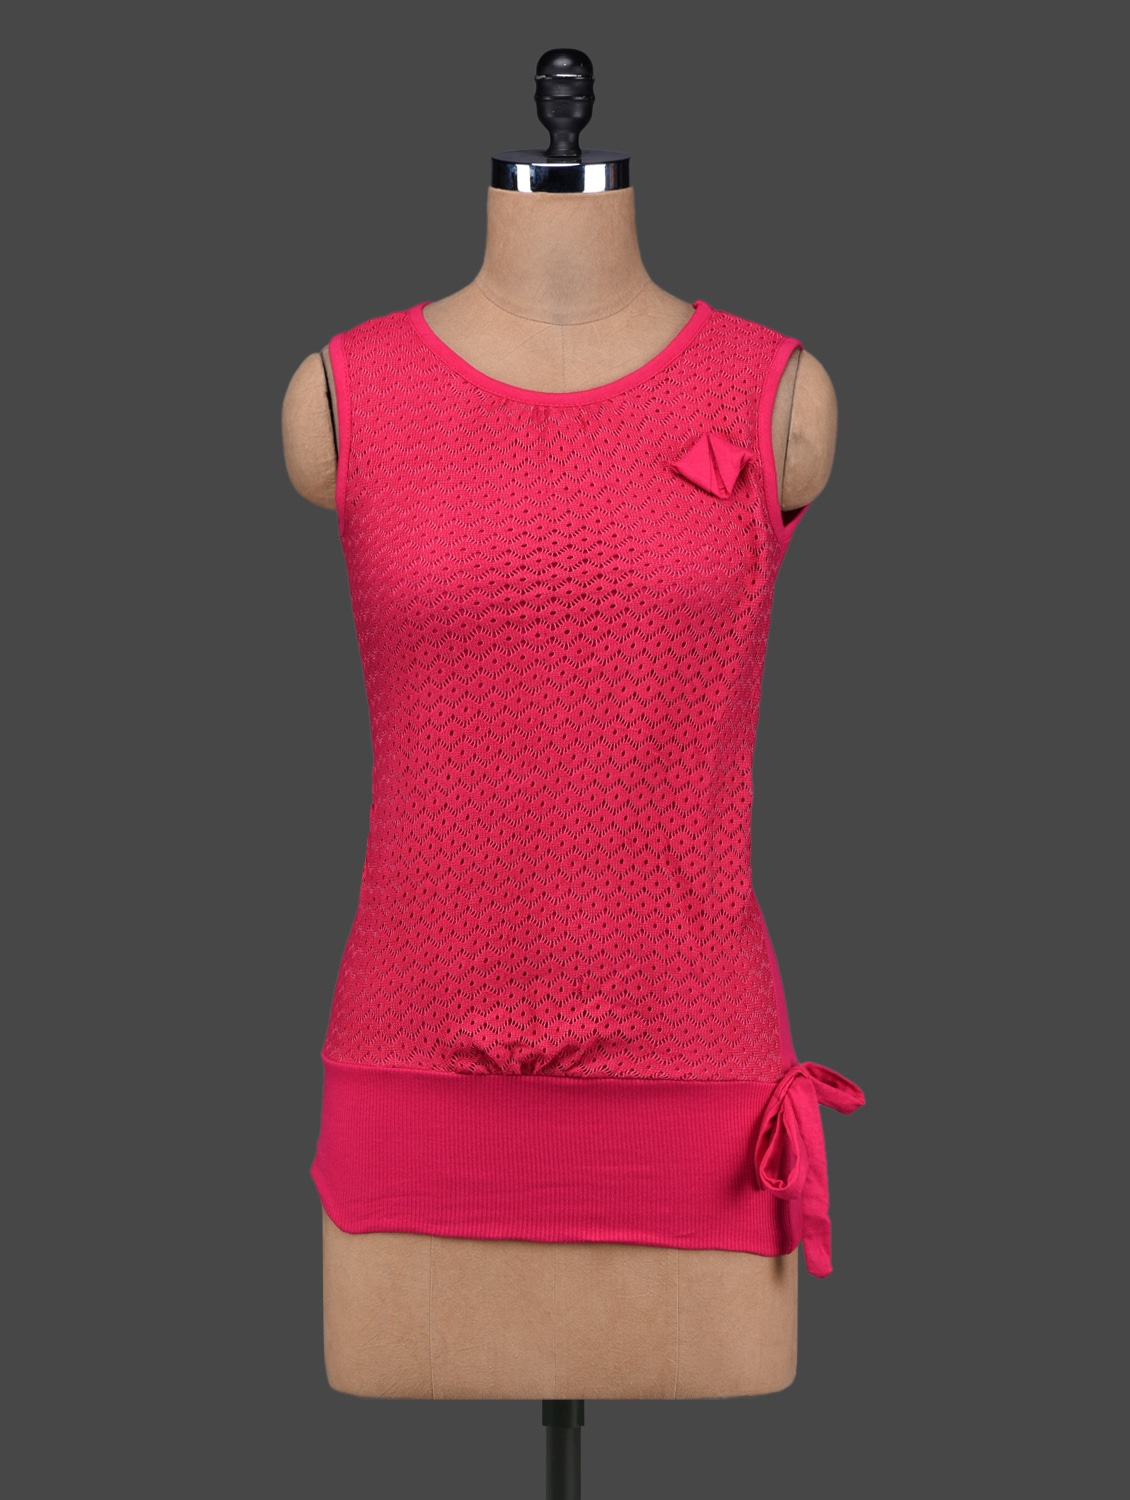 Fuchsia Cotton Lace Sleeveless Top - 27Ashwood